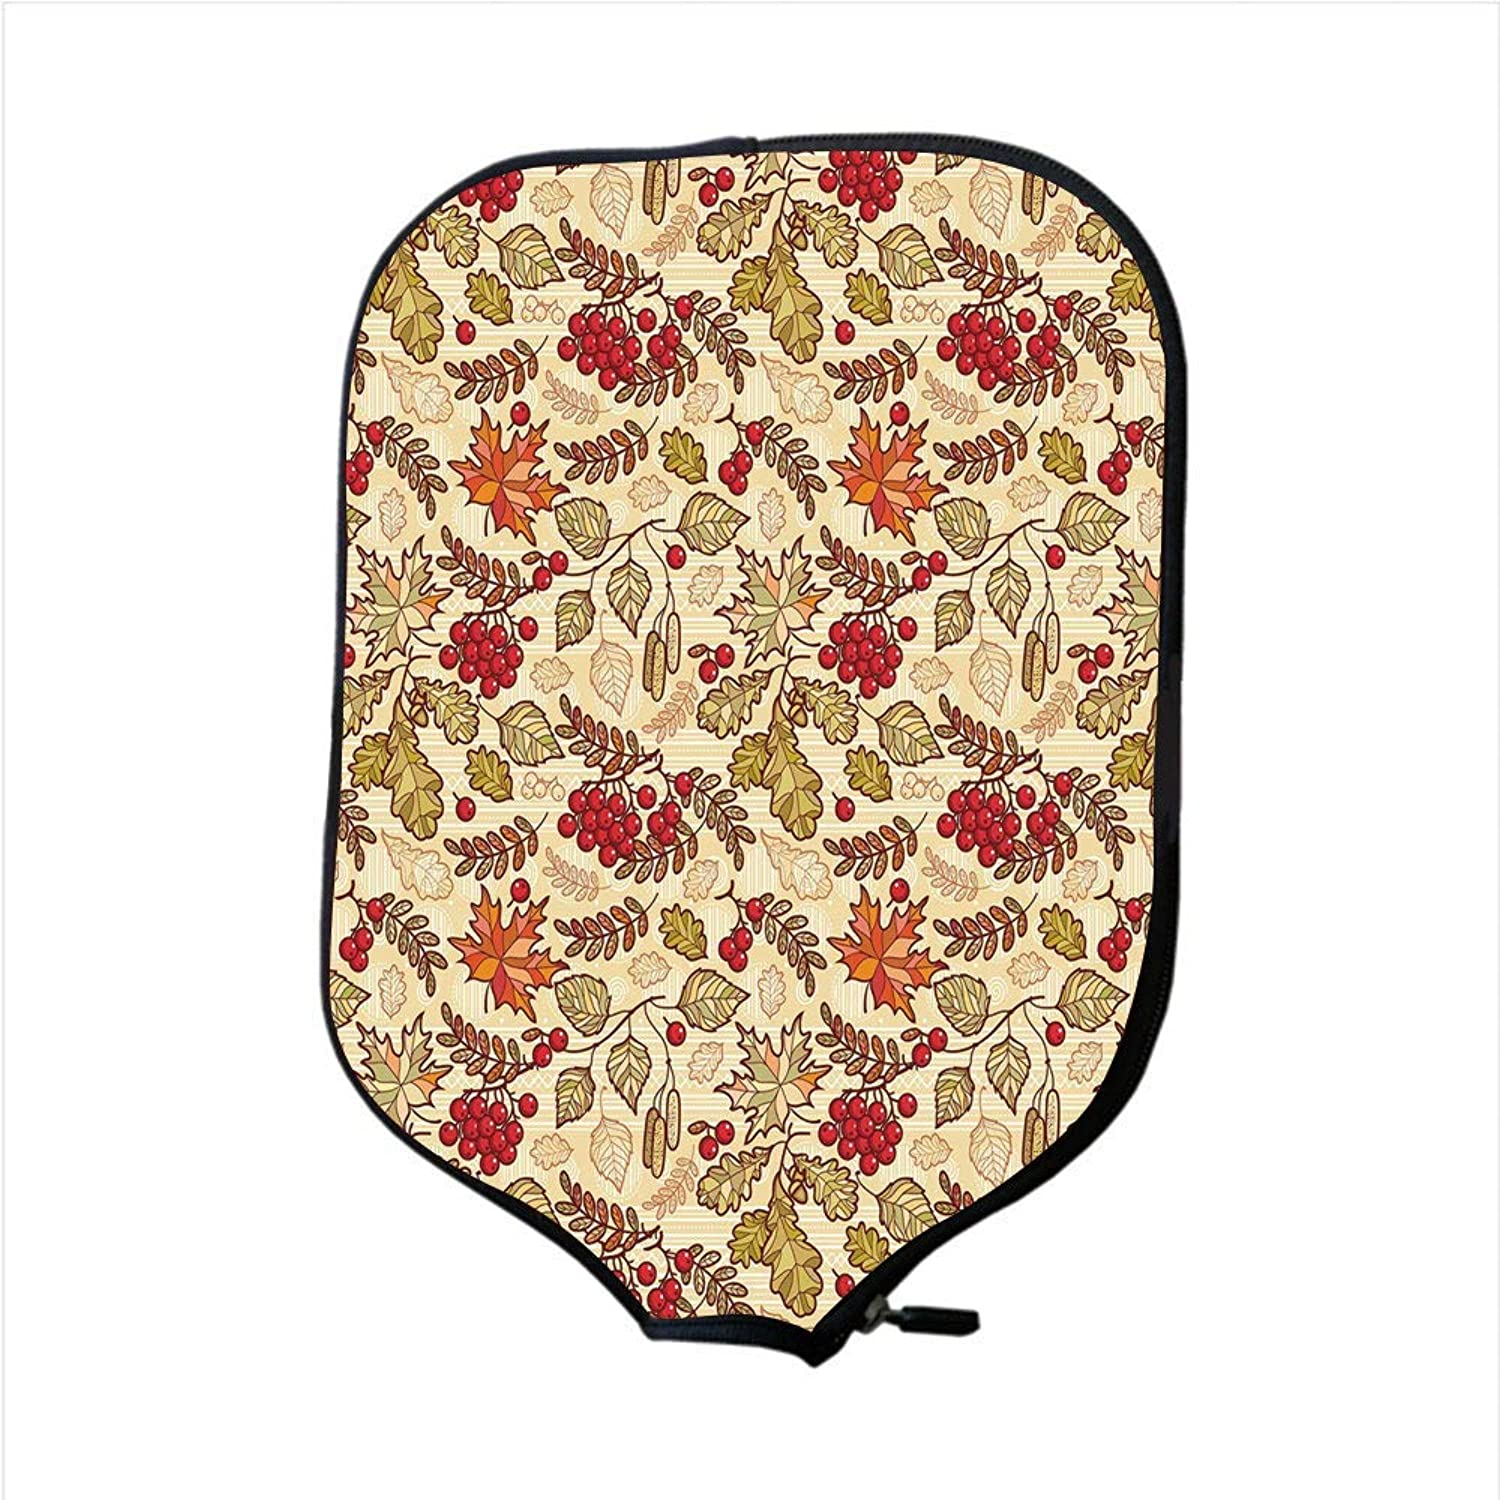 Fine Neoprene Pickleball Paddle Racket Cover Case,Rowan,Fall Season Themed Mixed Pattern with Maple Birch Oak Autumn Leaves and Ashberries Decorative,Multicolor,Fit for Most Rackets